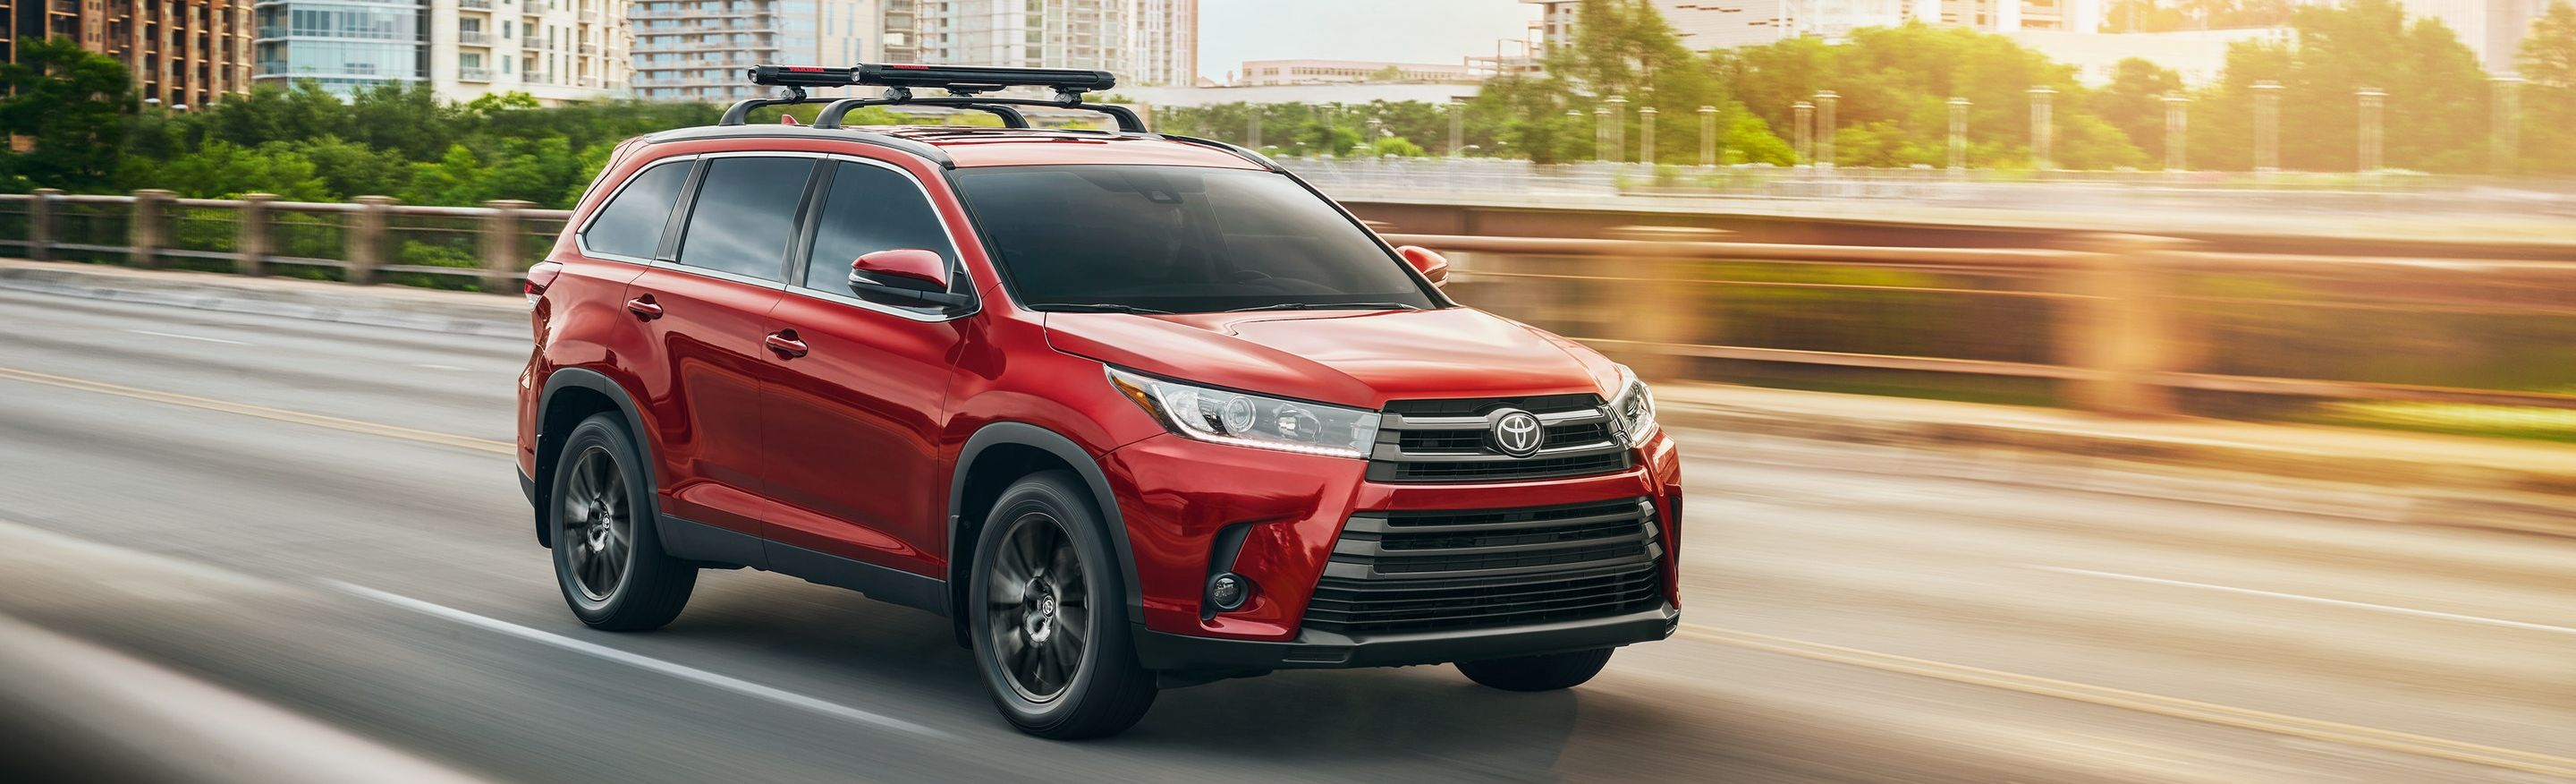 2019 Toyota Highlander vs 2019 Chevrolet Traverse near Glen Mills, PA